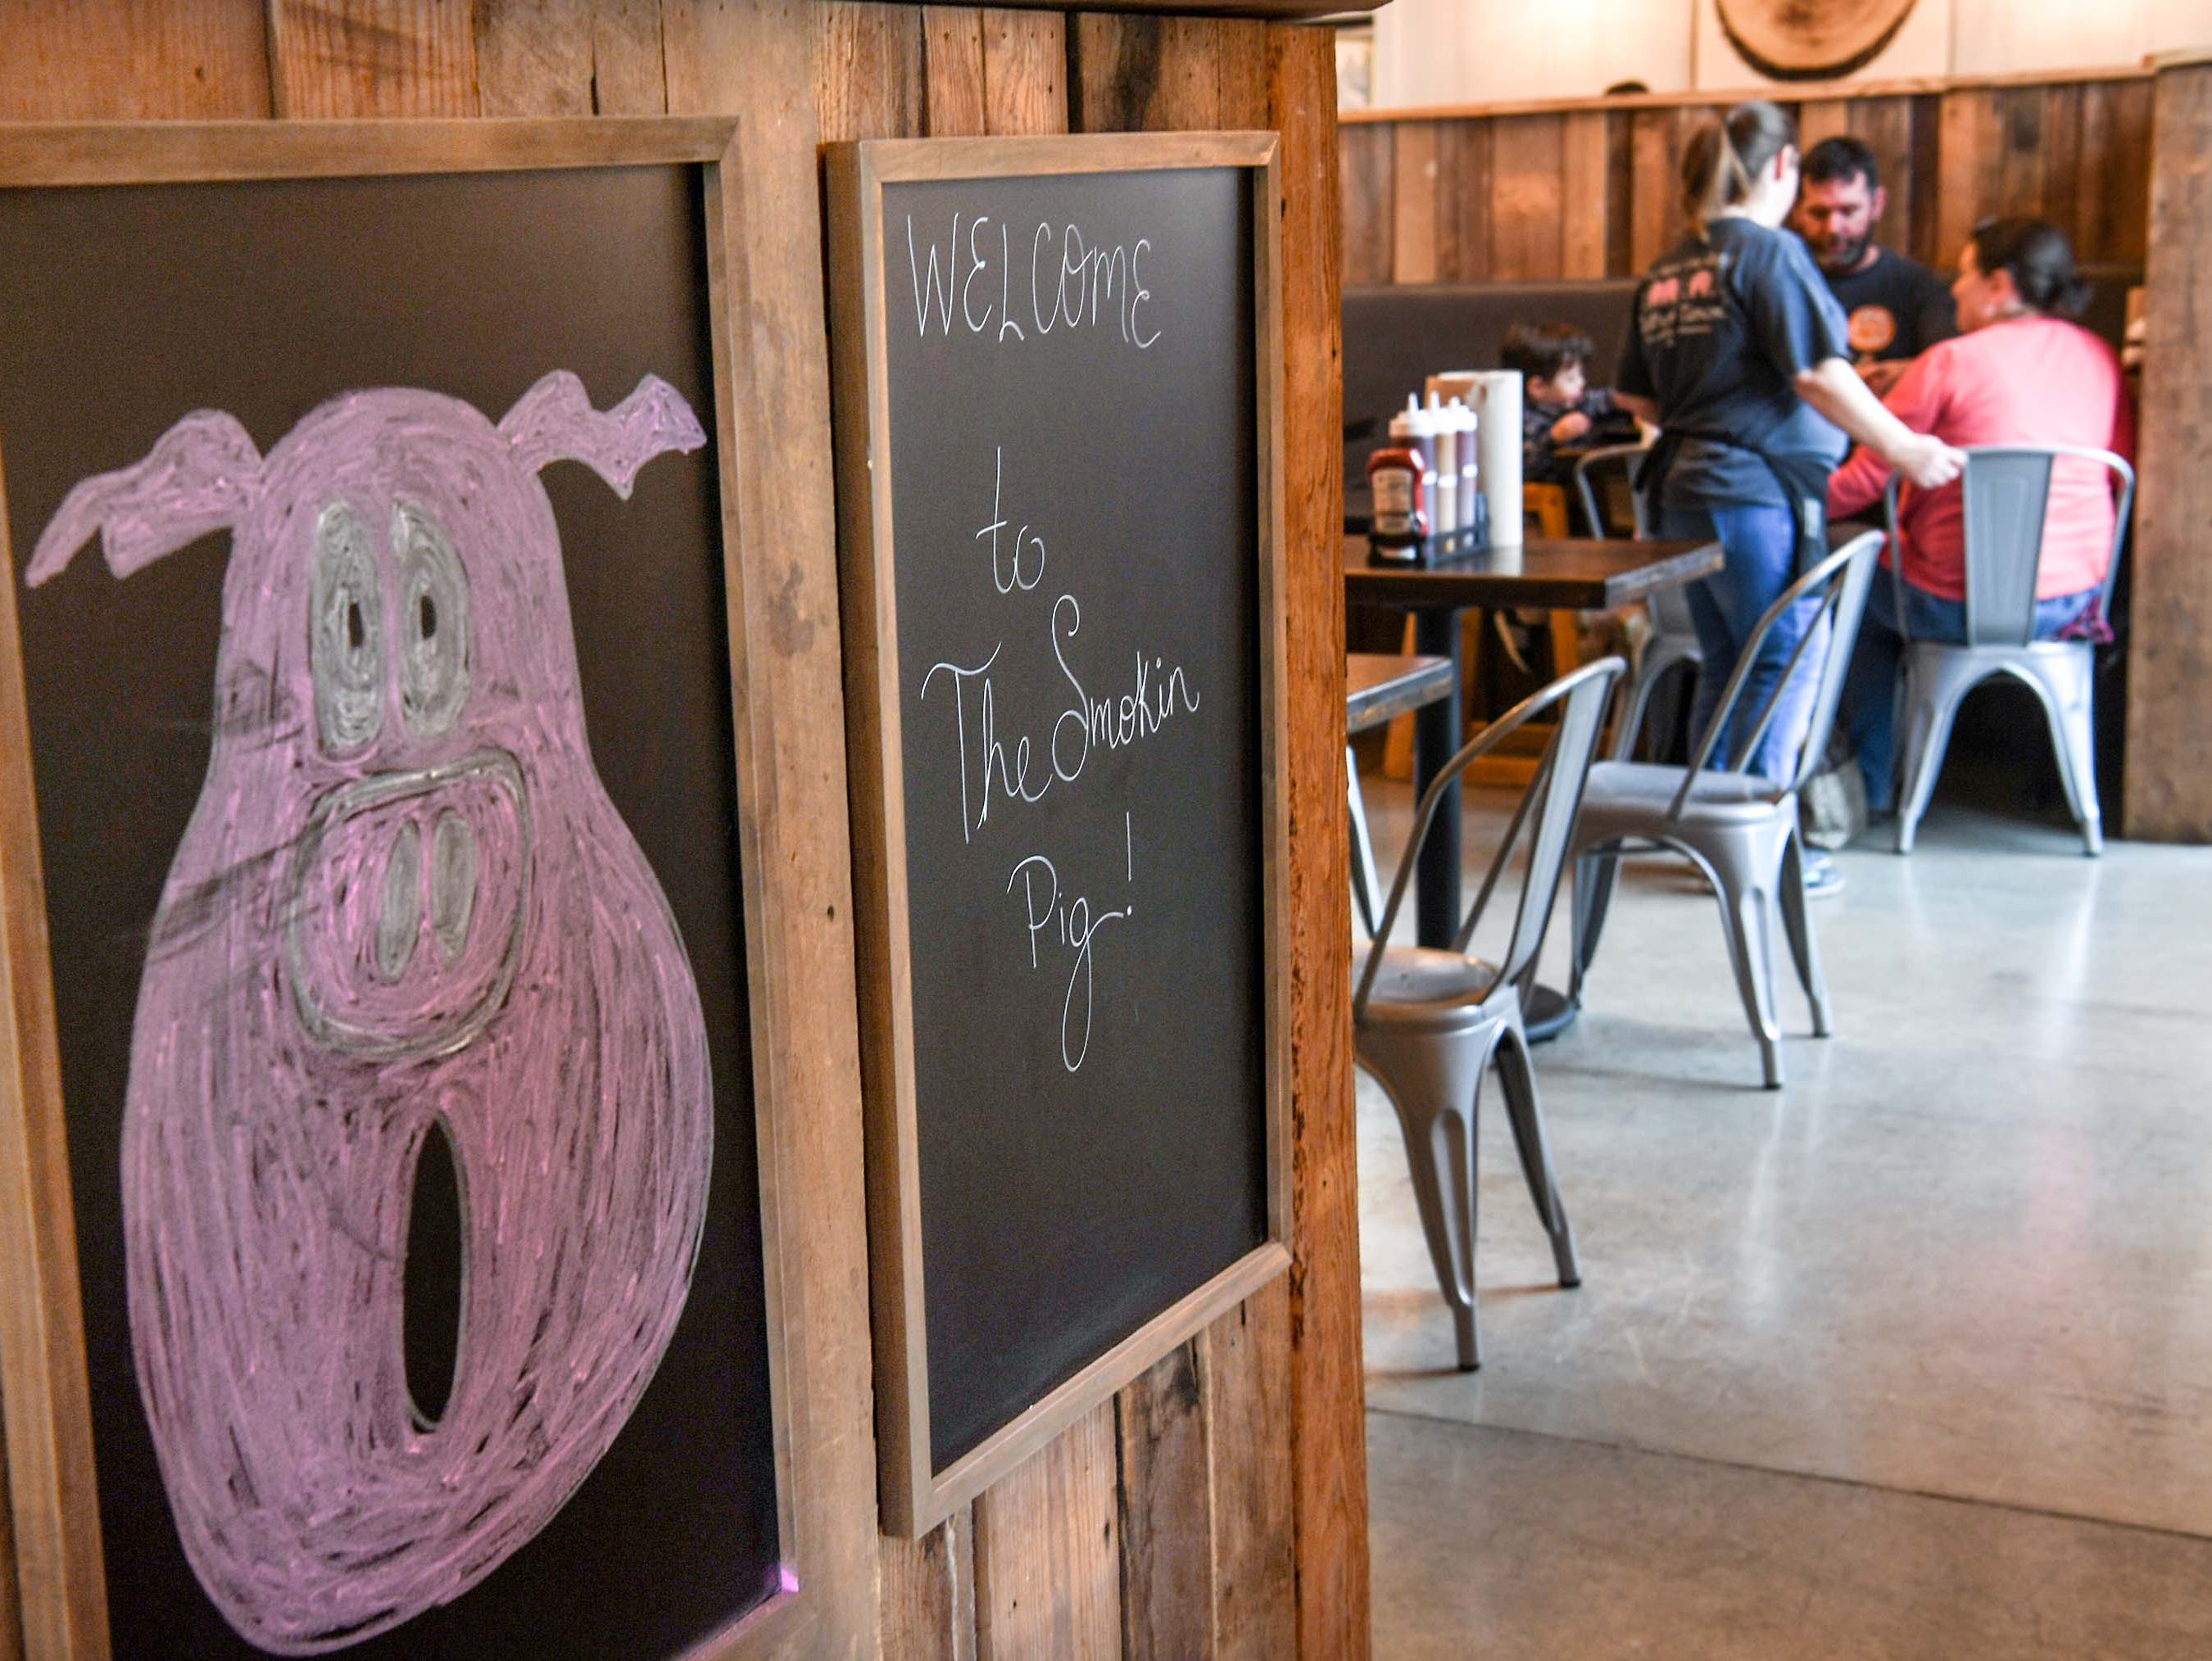 Opening day of Smokin' Pig on Evergreen Road in Anderson, order their lunch Thursday, February 28, 2019. The new location is the fourth, with locations in Pendleton, Williamston, and Easley.